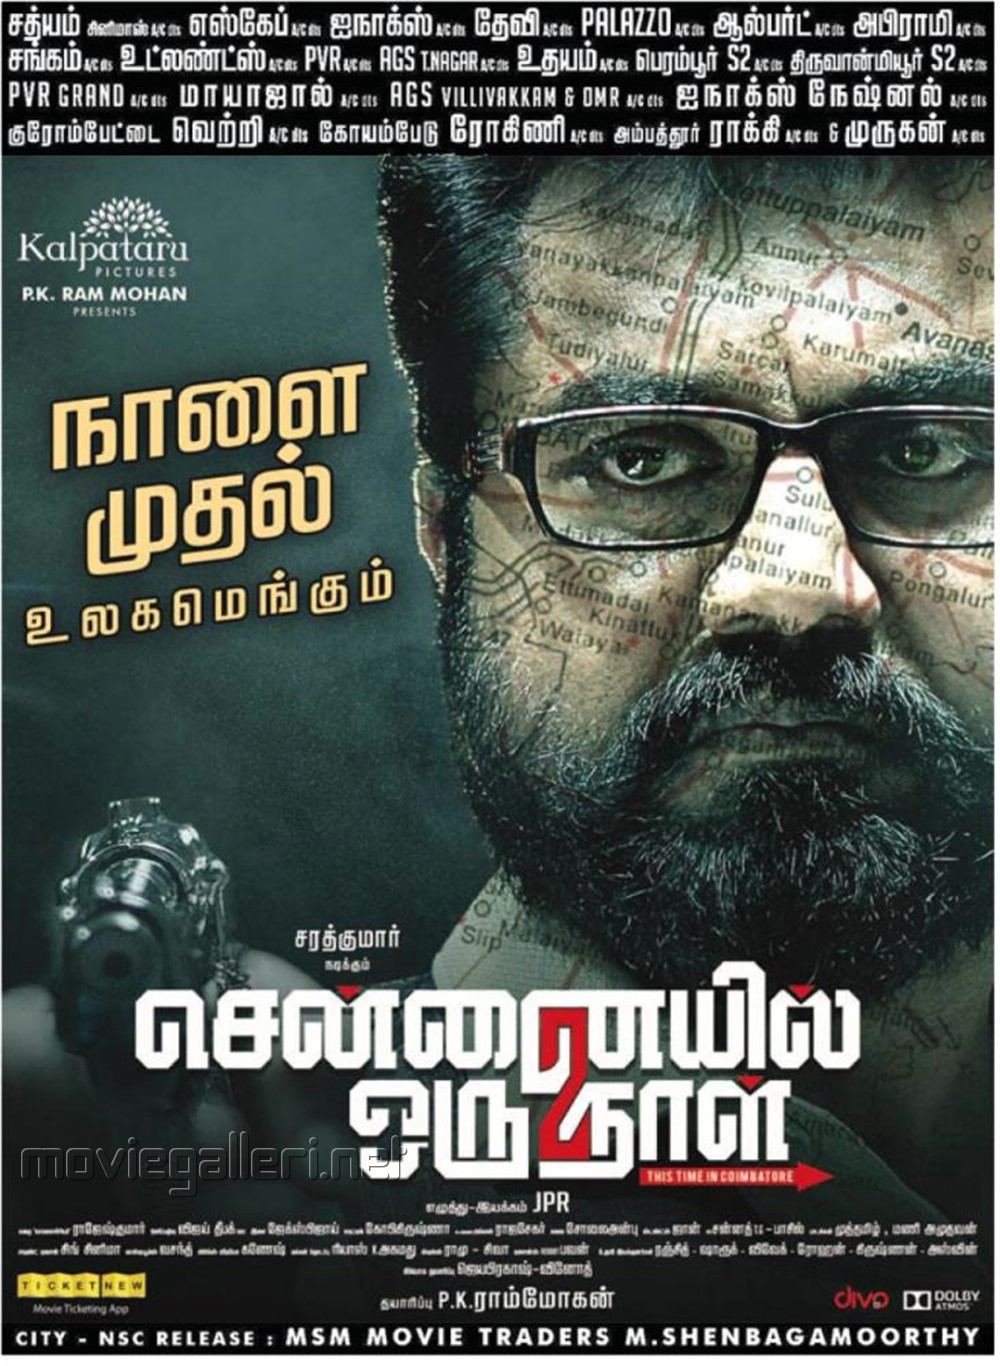 Sarathkumar's Chennaiyil Oru Naal 2 Movie Release Today Posters